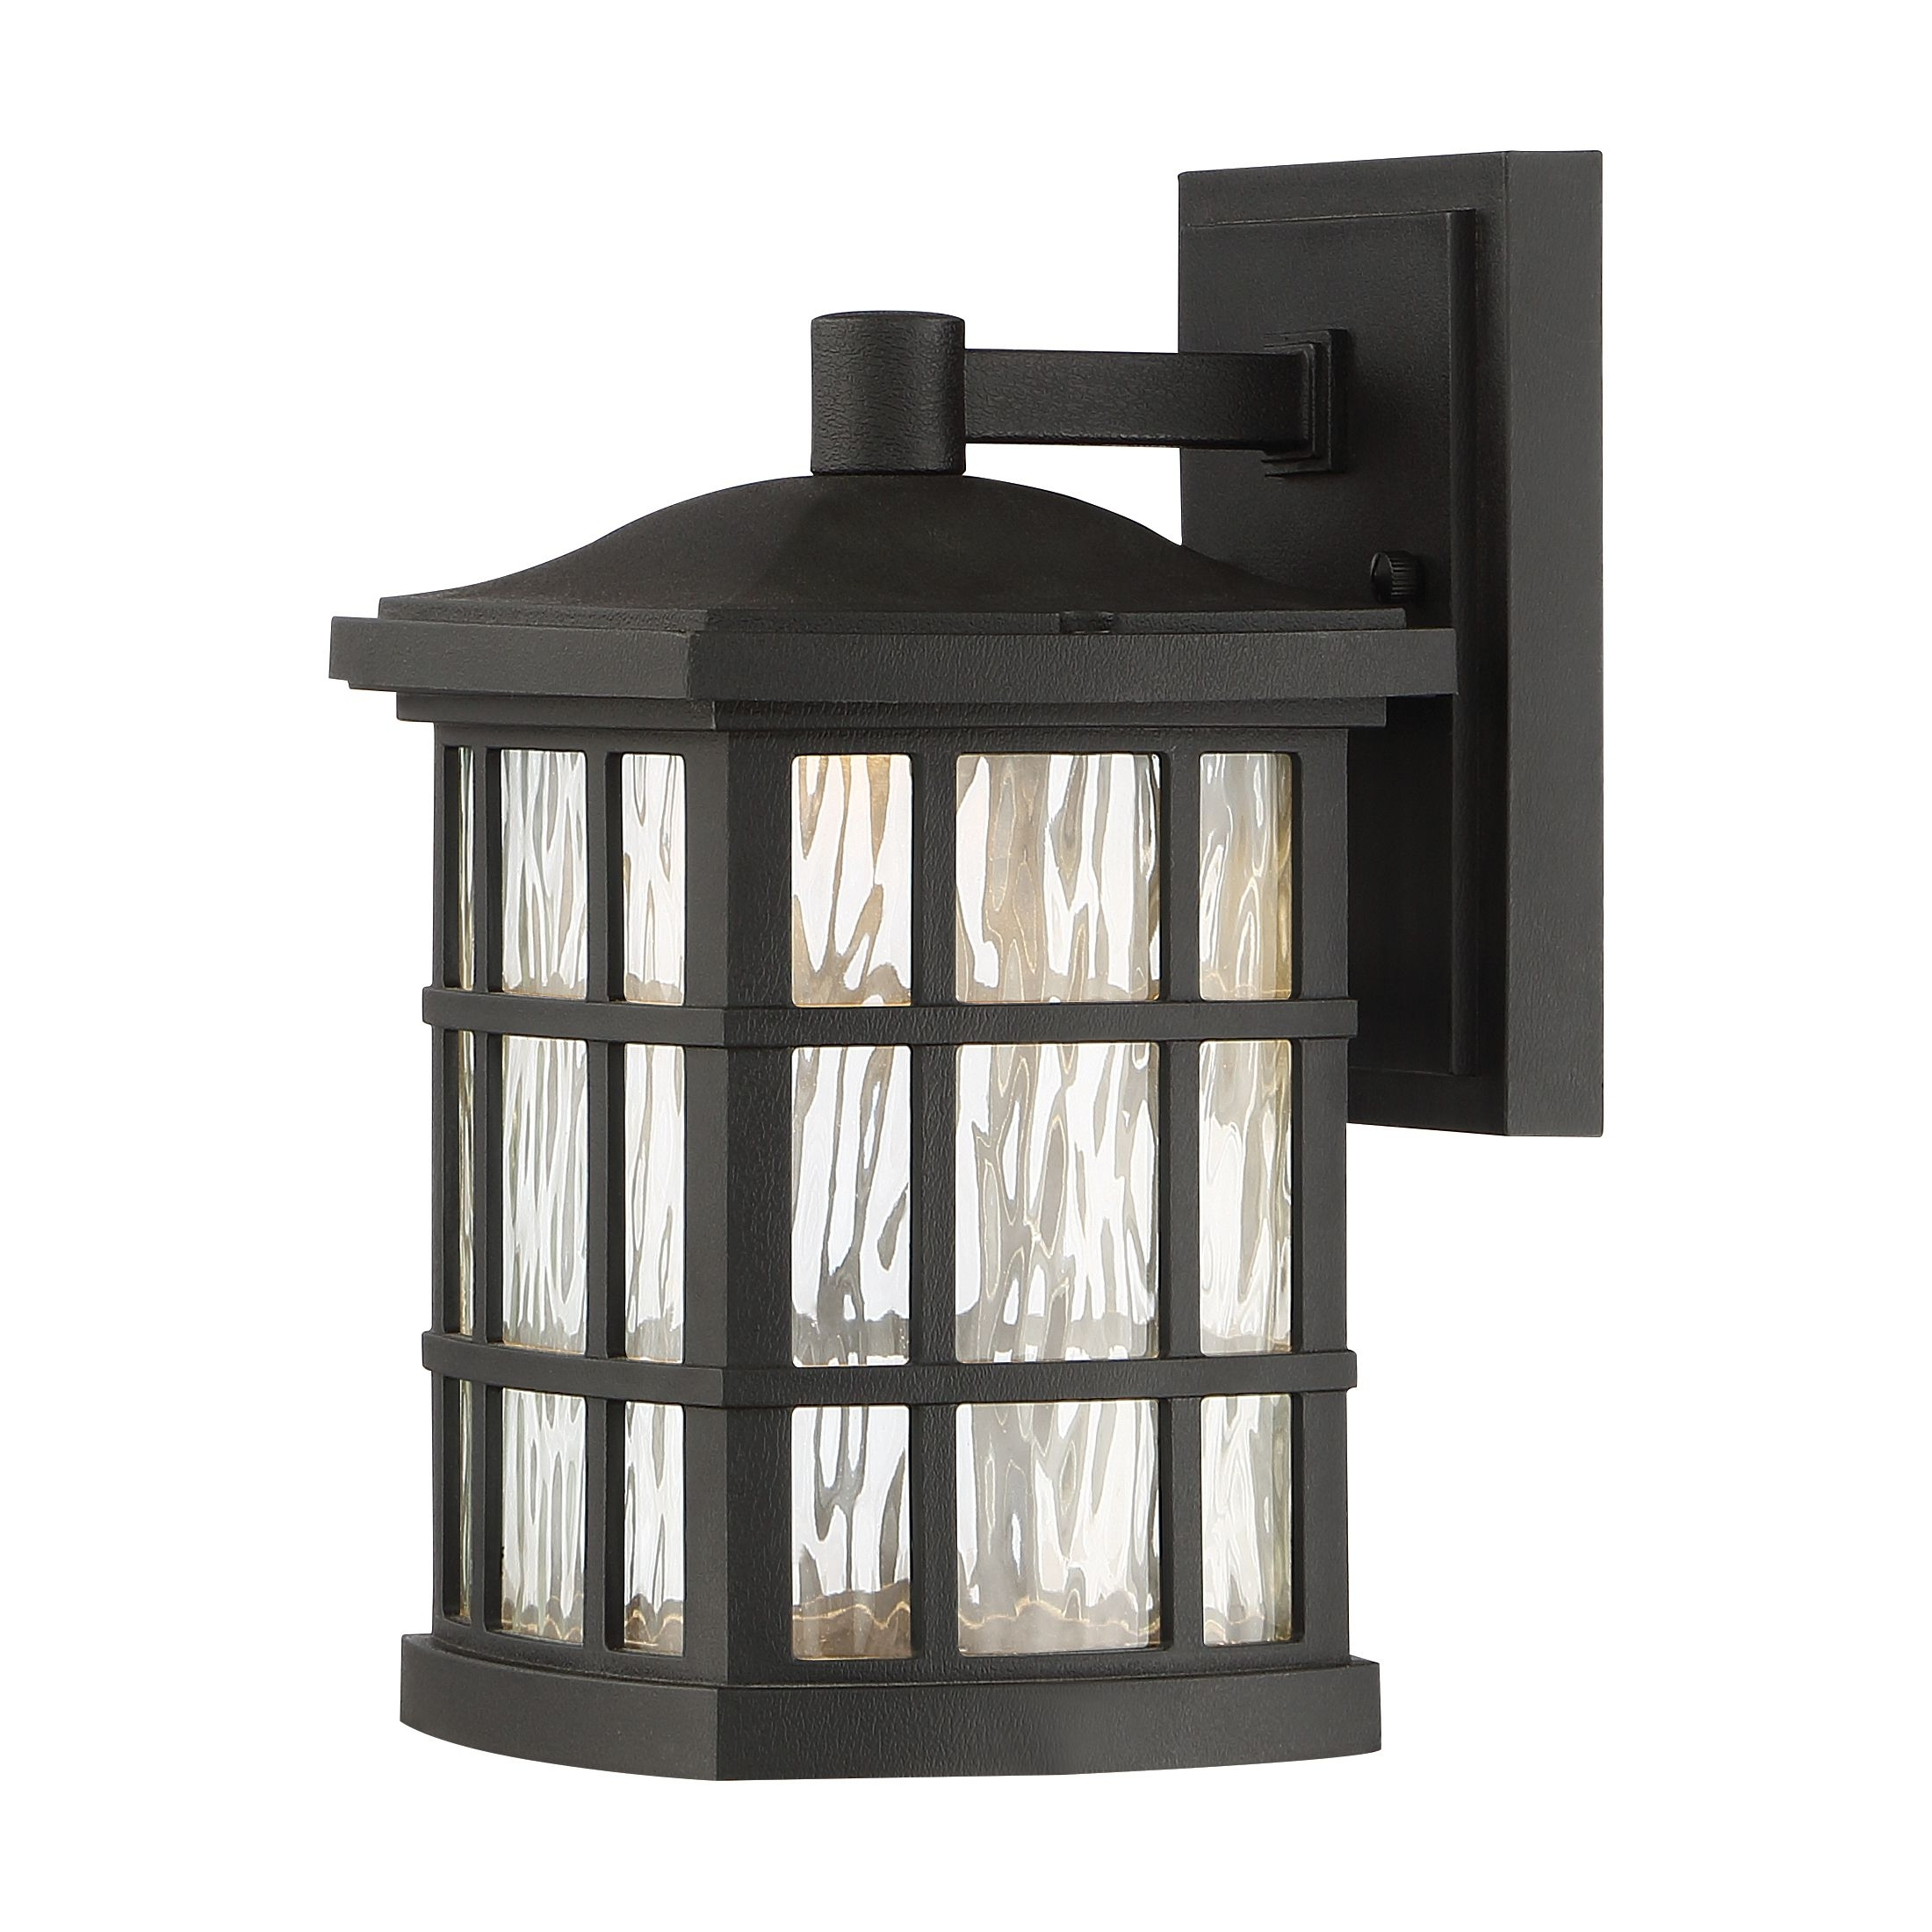 Quoizel In Widely Used Outdoor Lanterns With Led Lights (View 18 of 20)